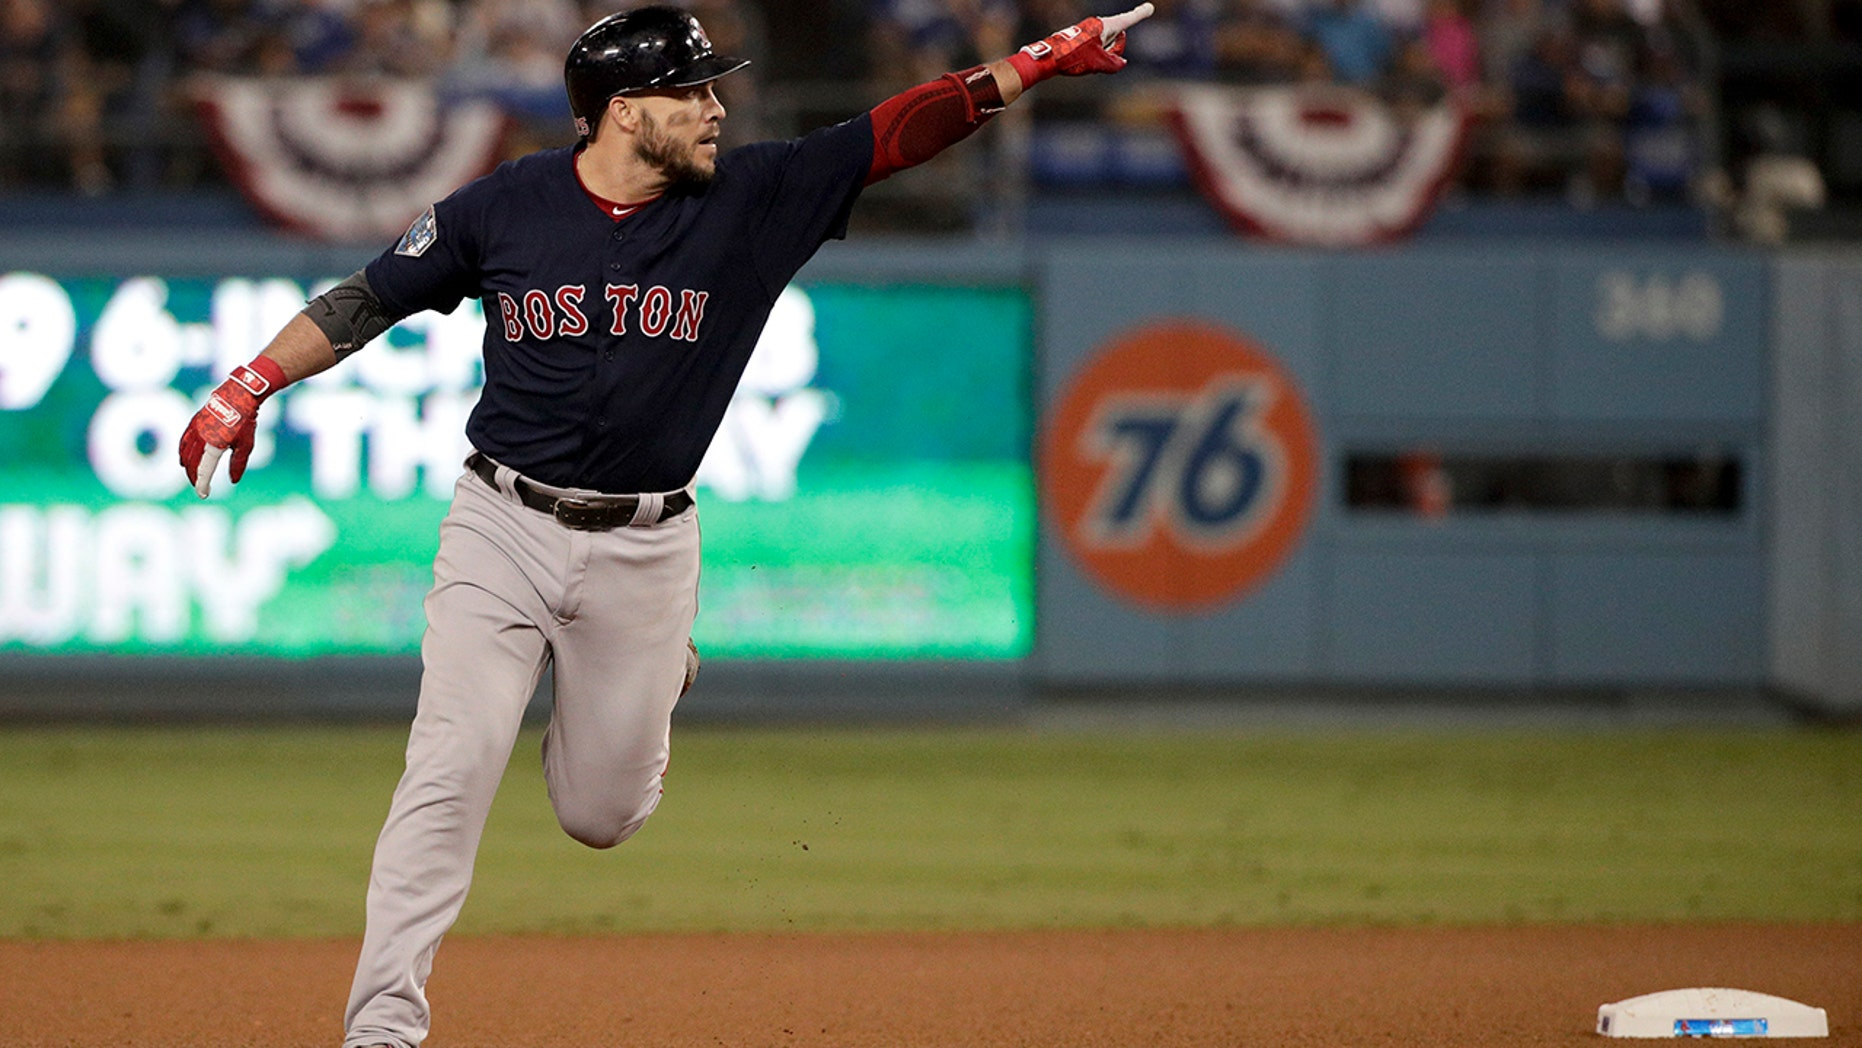 Red Sox storm past Dodgers to take 3-1 World Series lead